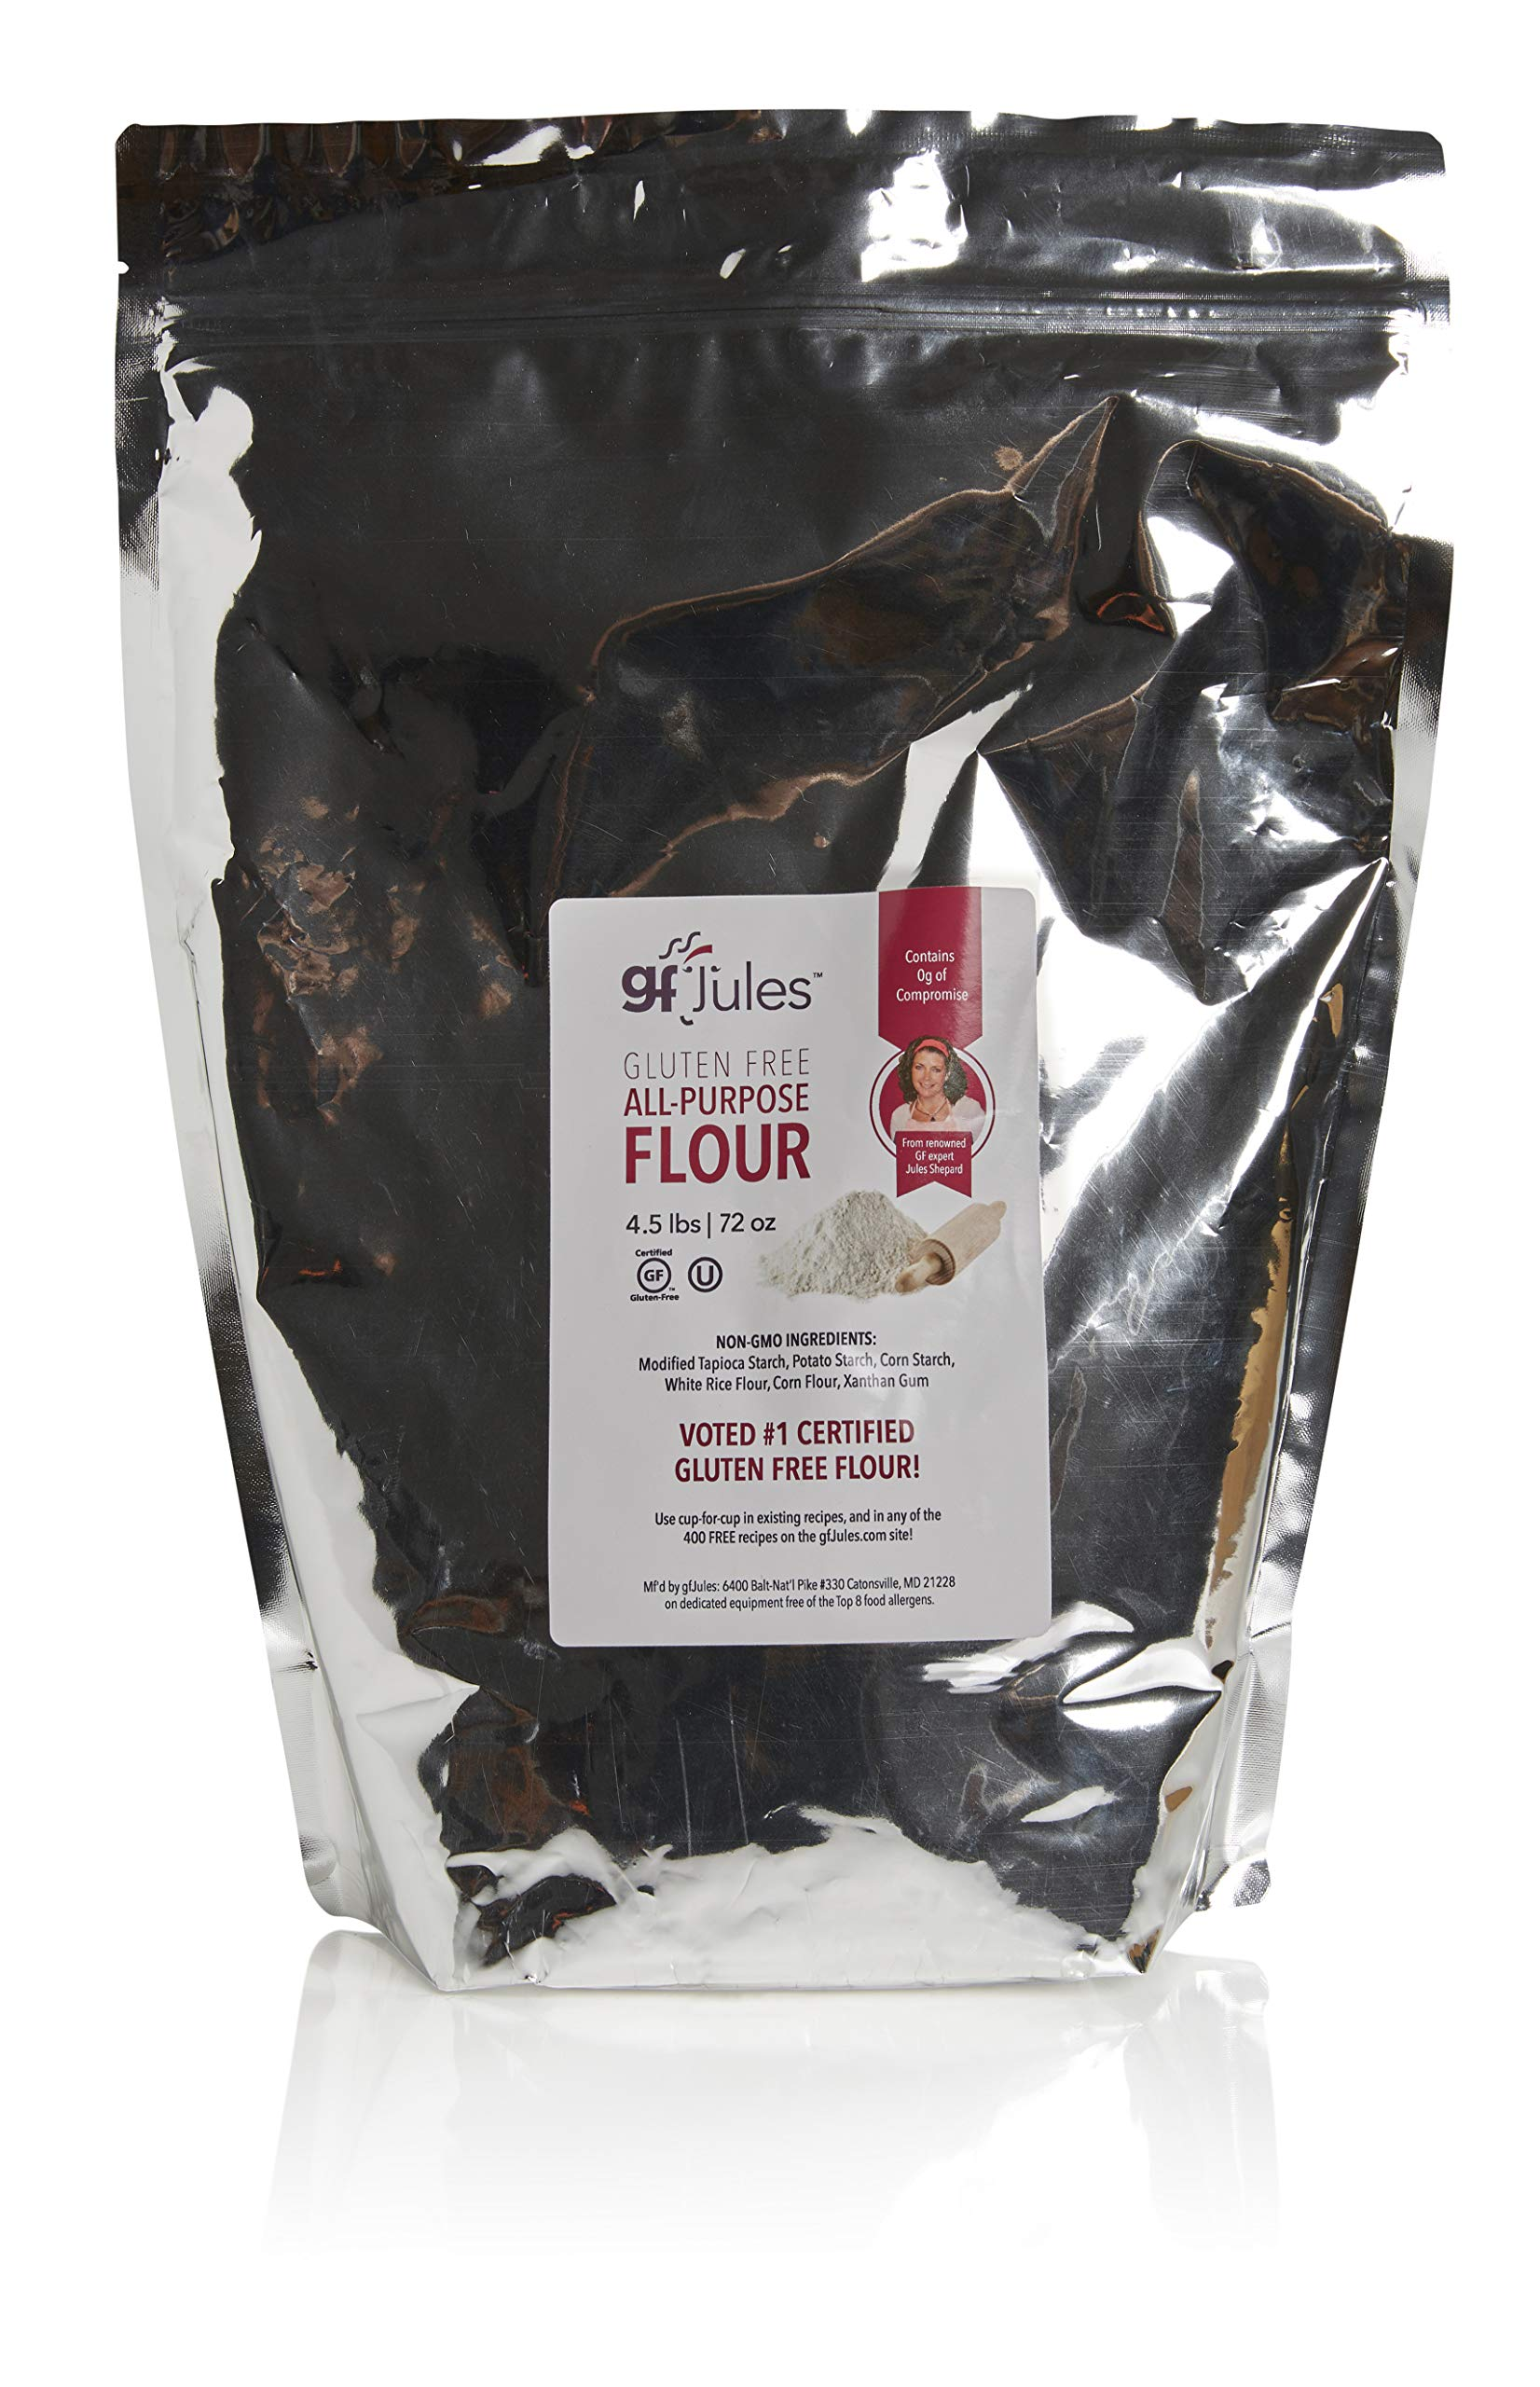 gfJules Gluten Free Flour - Voted #1 by GF Consumers 4.5 lb Bag, Pack of 1 by gfJules